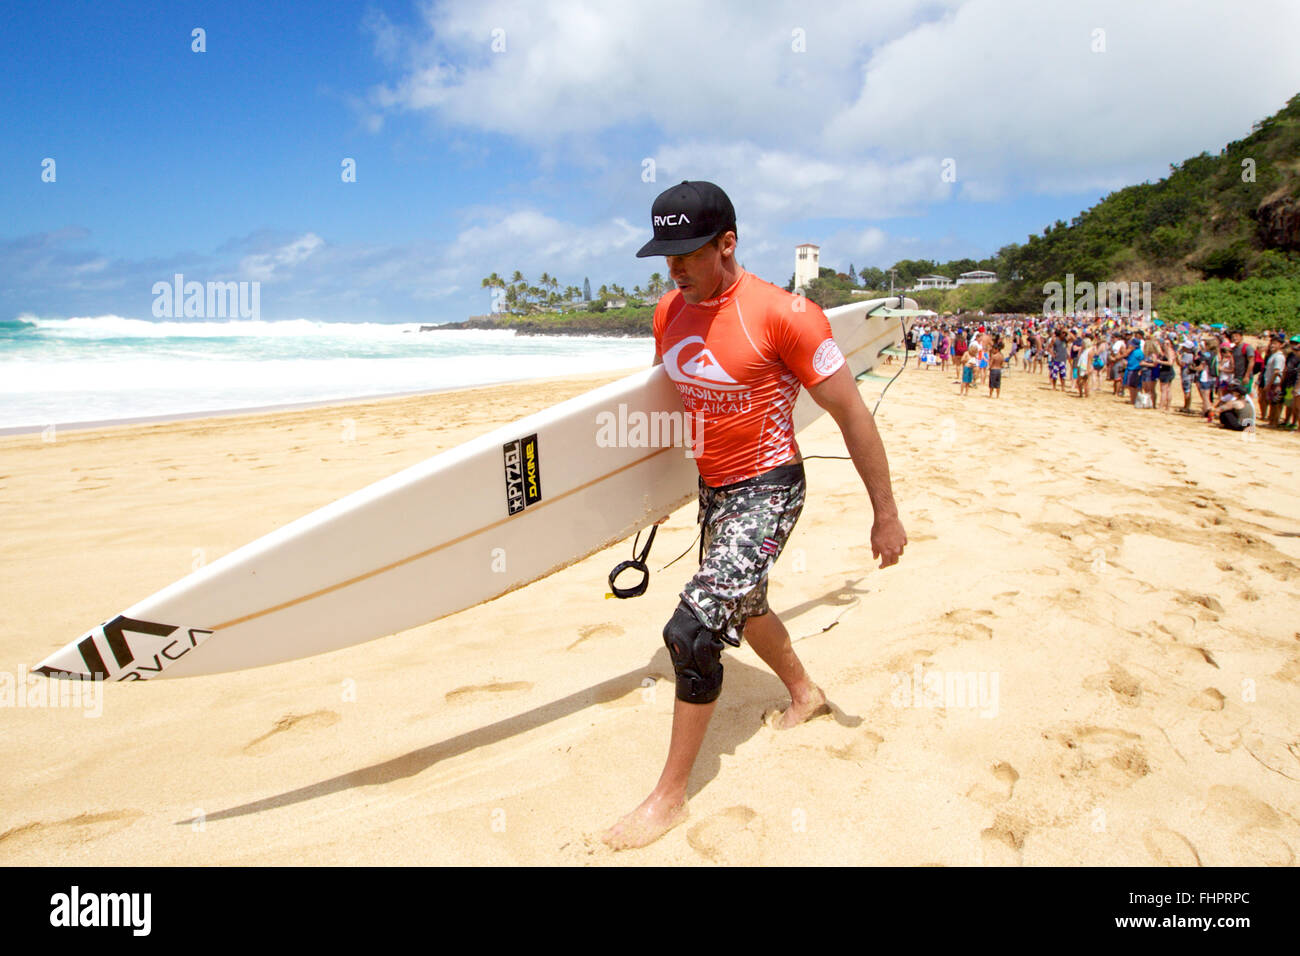 Haleiwa, Hawaii, USA. 25th February, 2016. February 25, 2016 - Bruce Irons walking the beach after his heat during - Stock Image